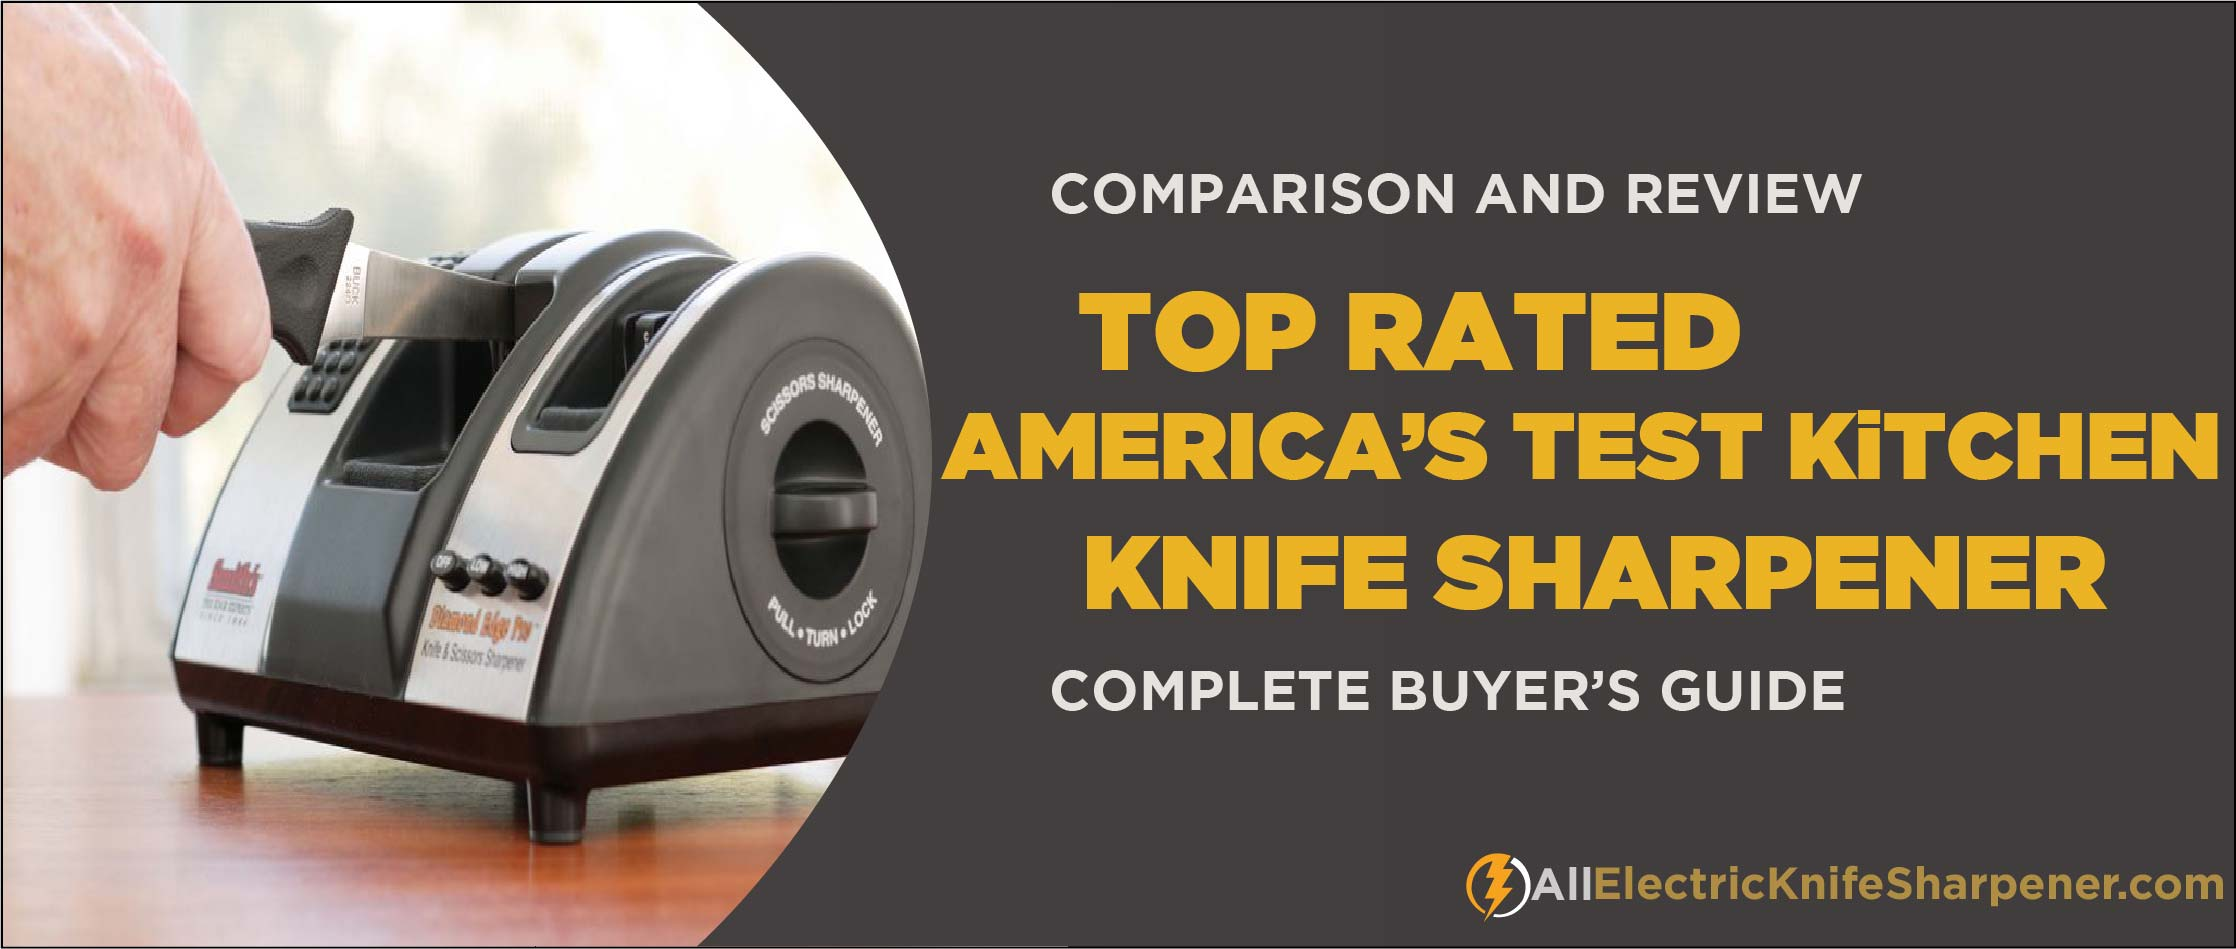 Best Electric Knife Sharpener America's Test Kitchen